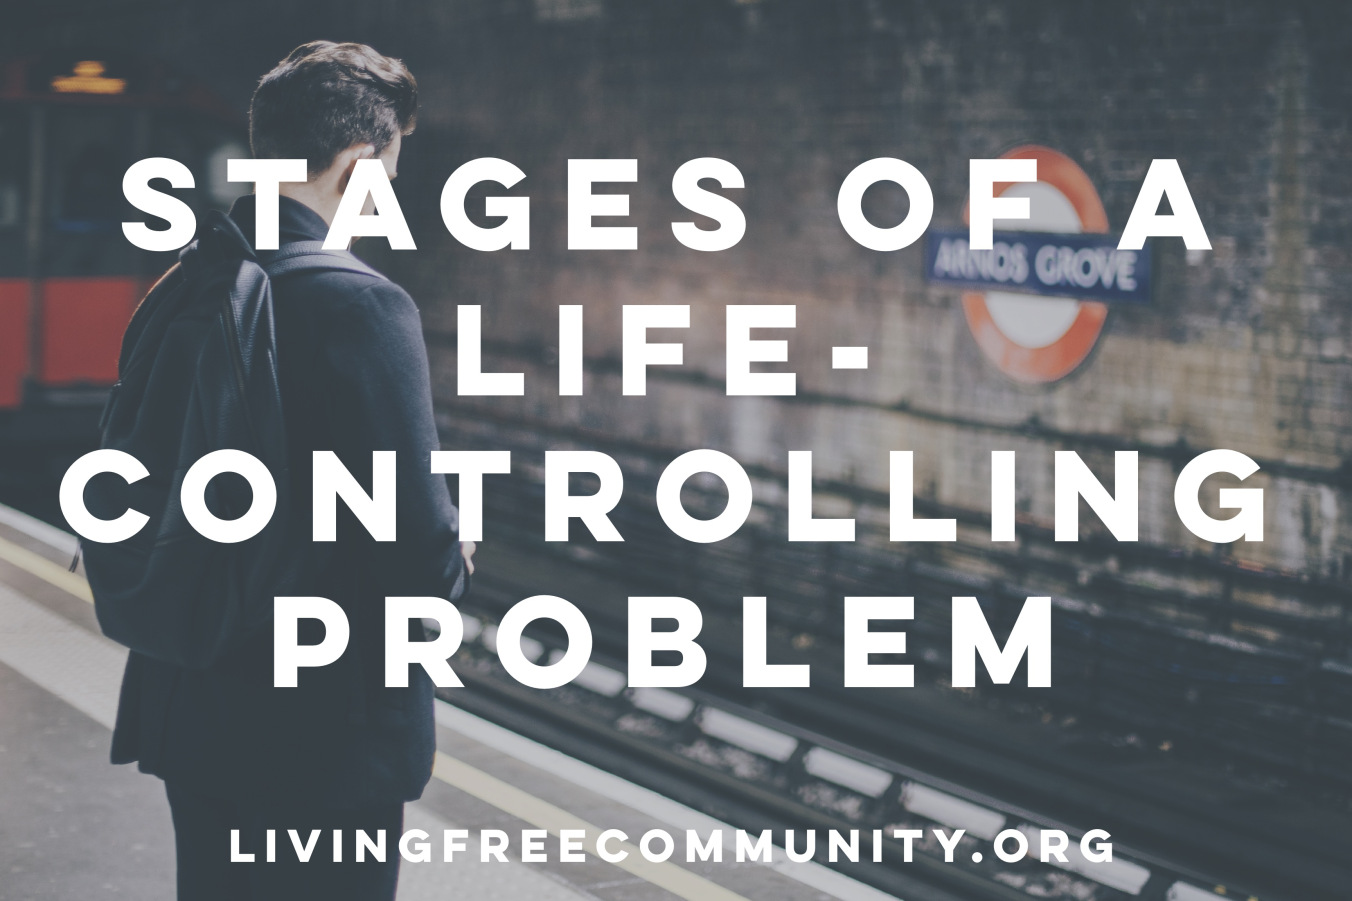 Stages of a Life-Controlling Problem